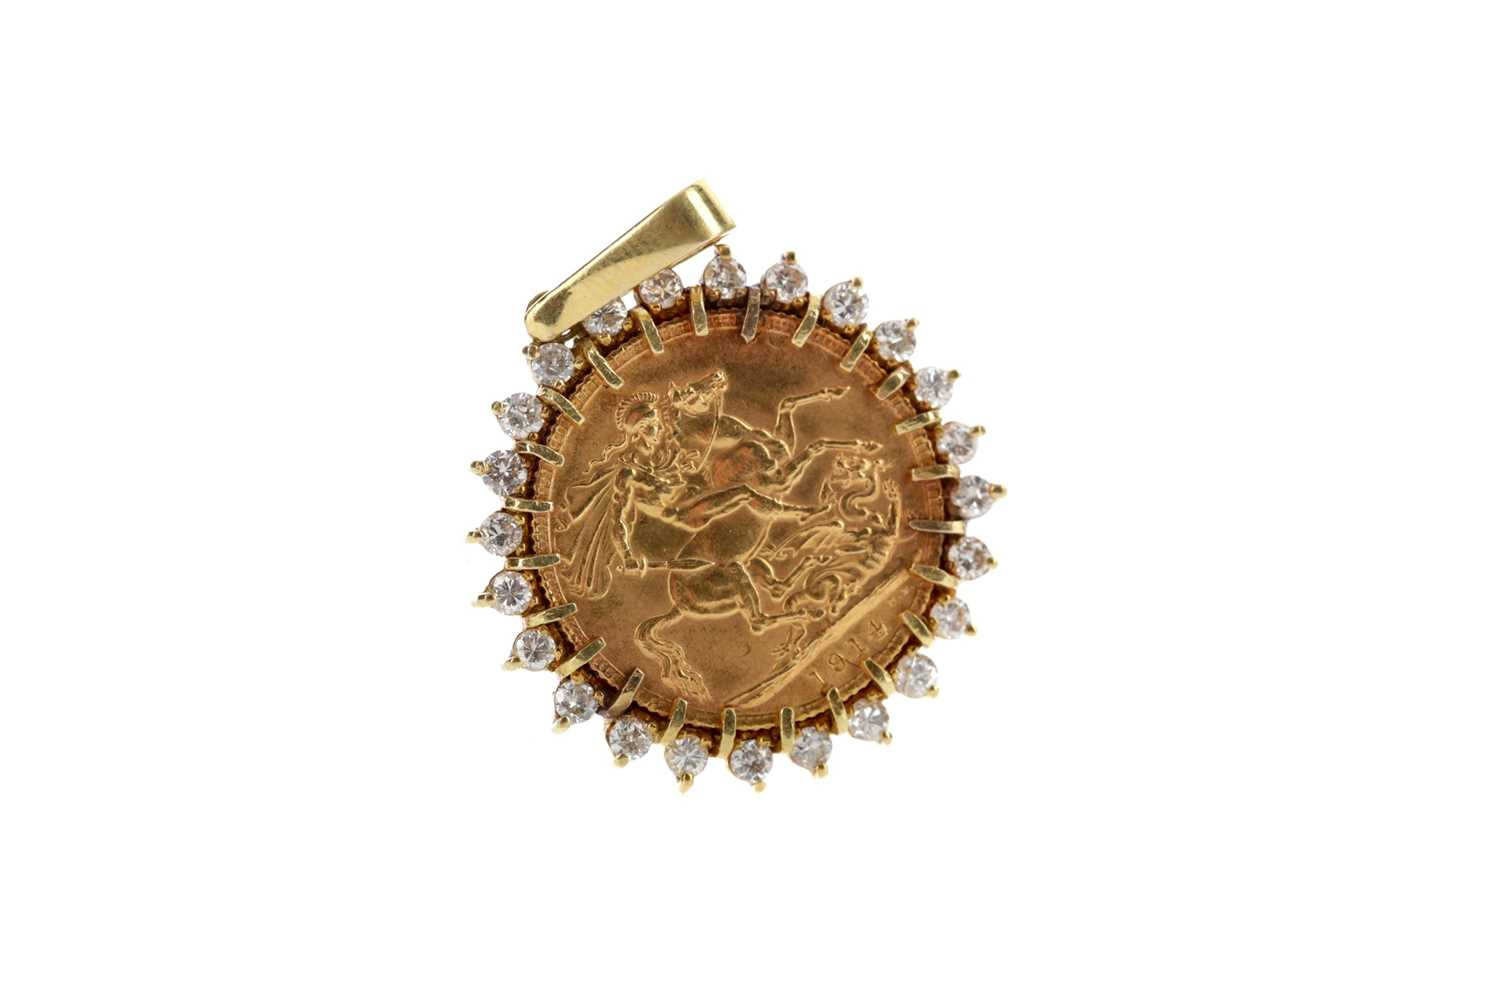 Lot 25 - A SOVEREIGN PENDANT DATED 1914